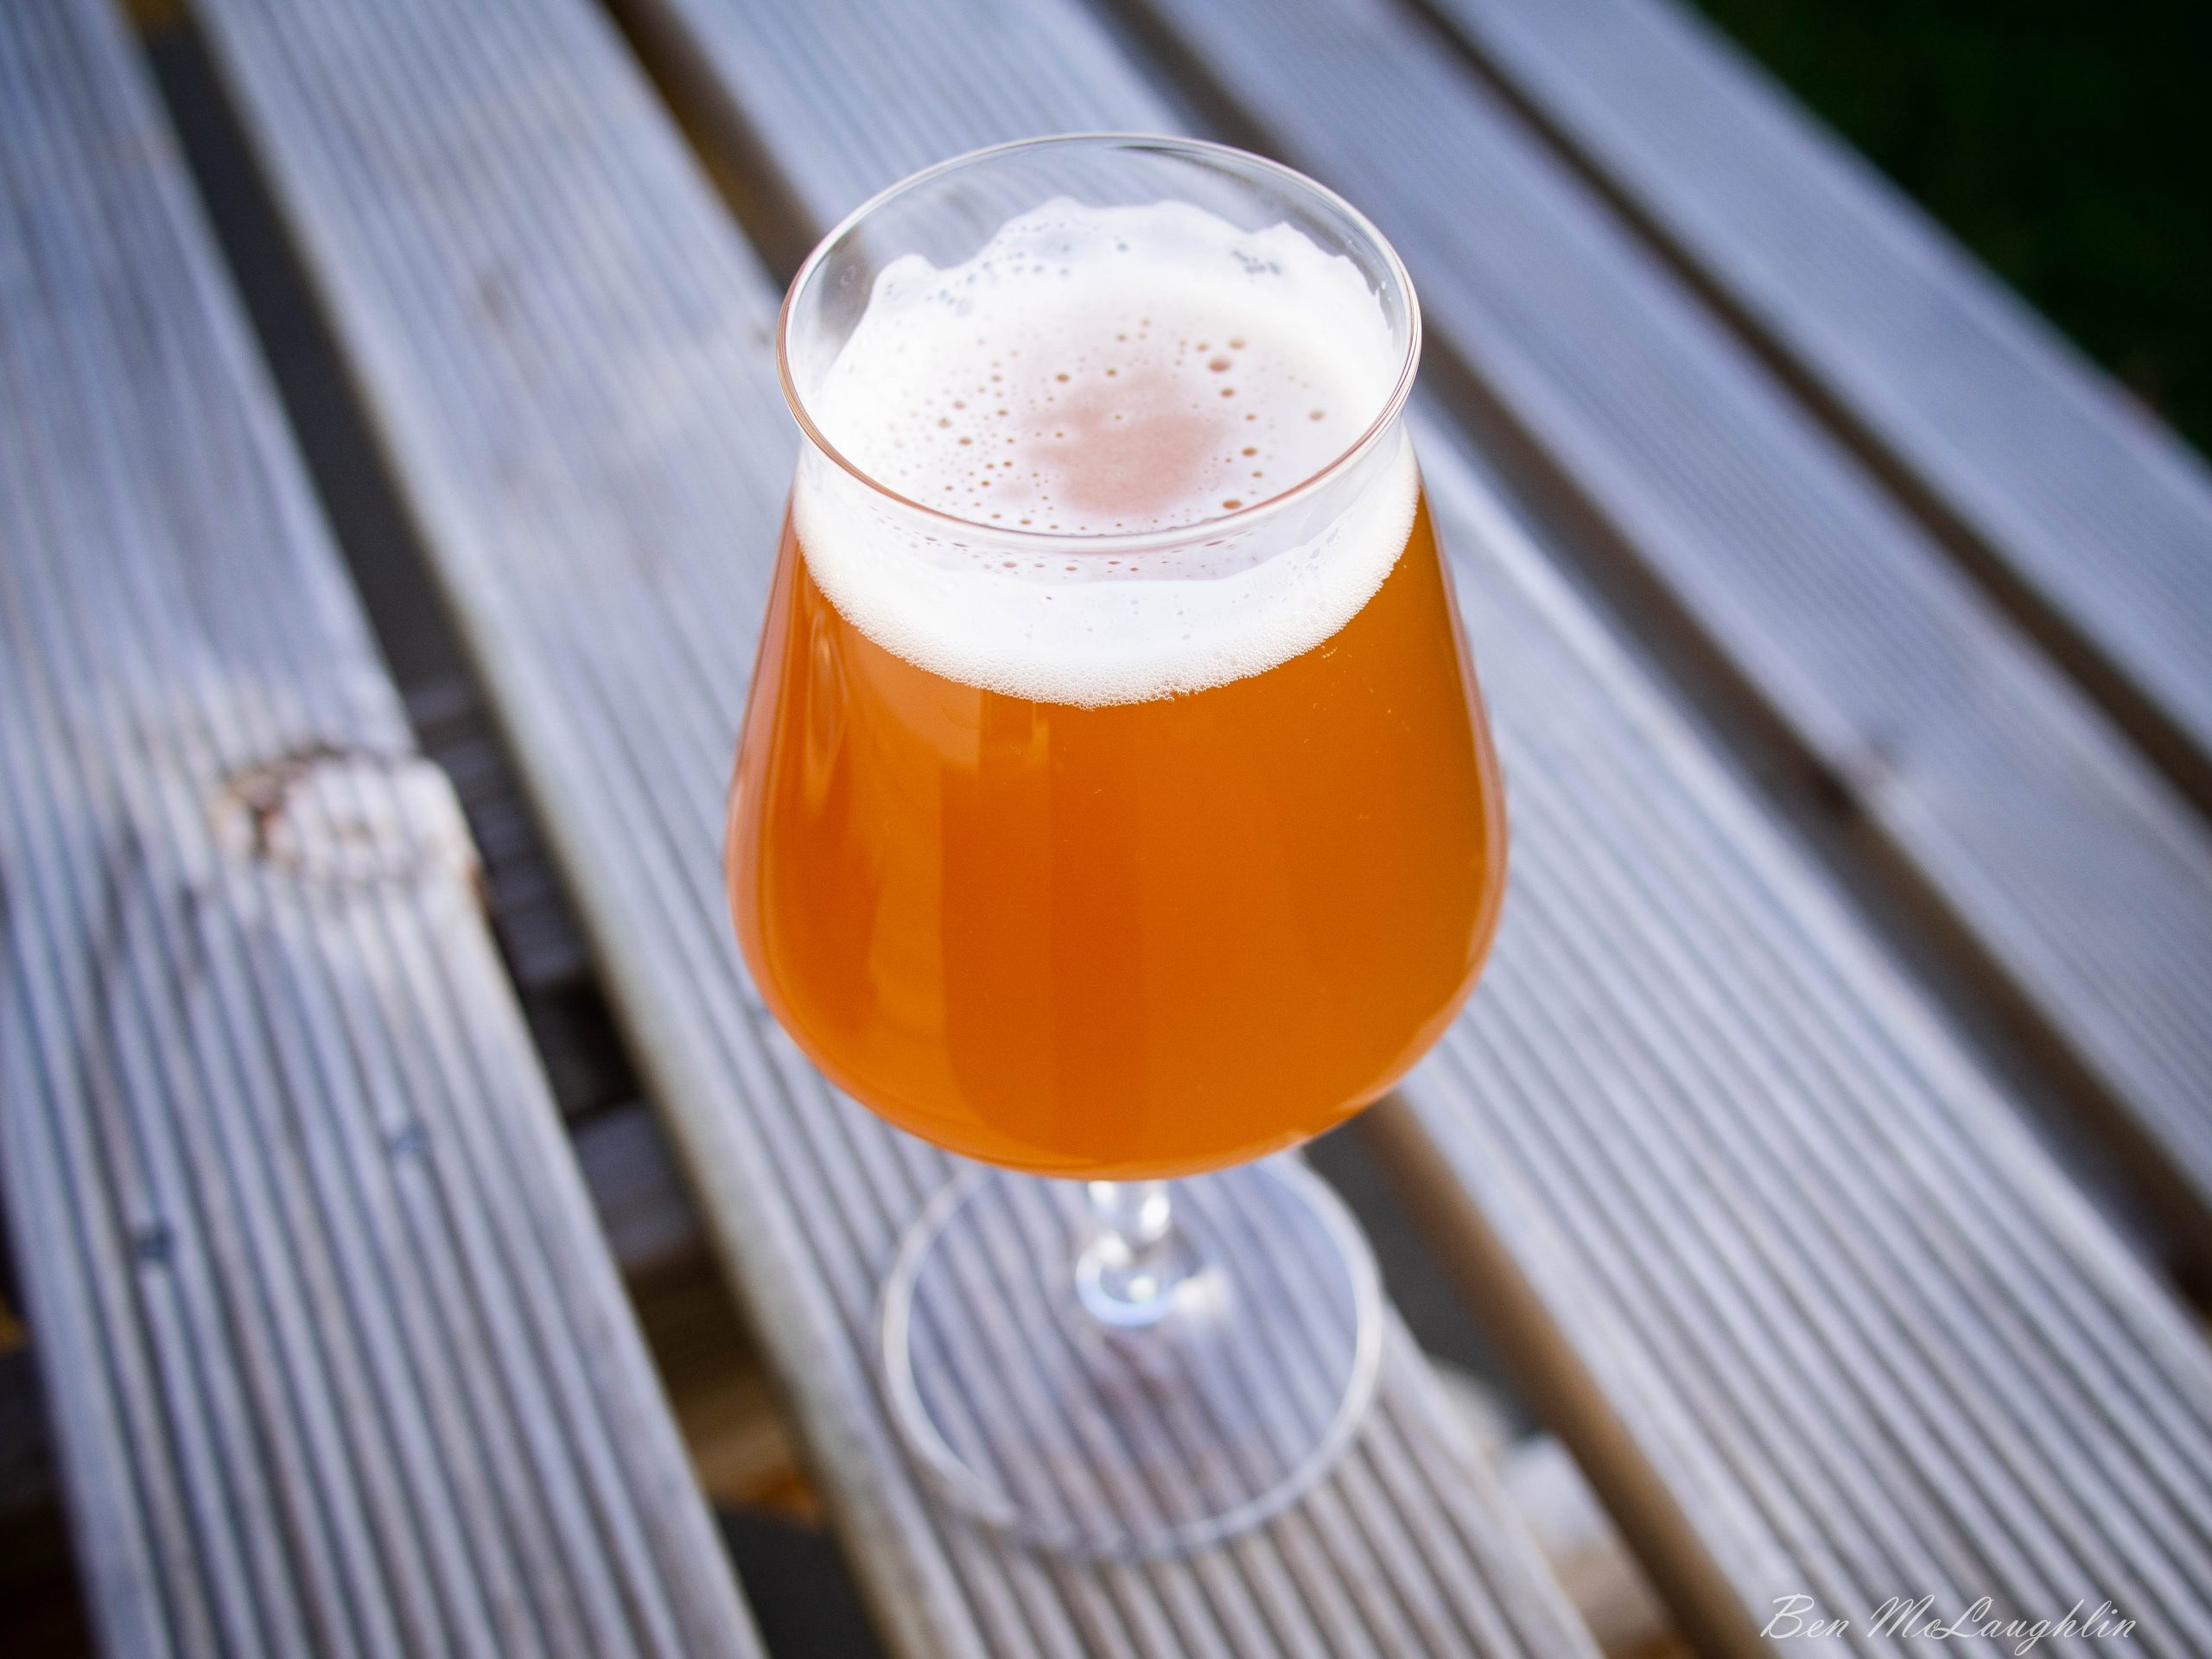 Sour & Funky | Kettle-soured Brett Saison